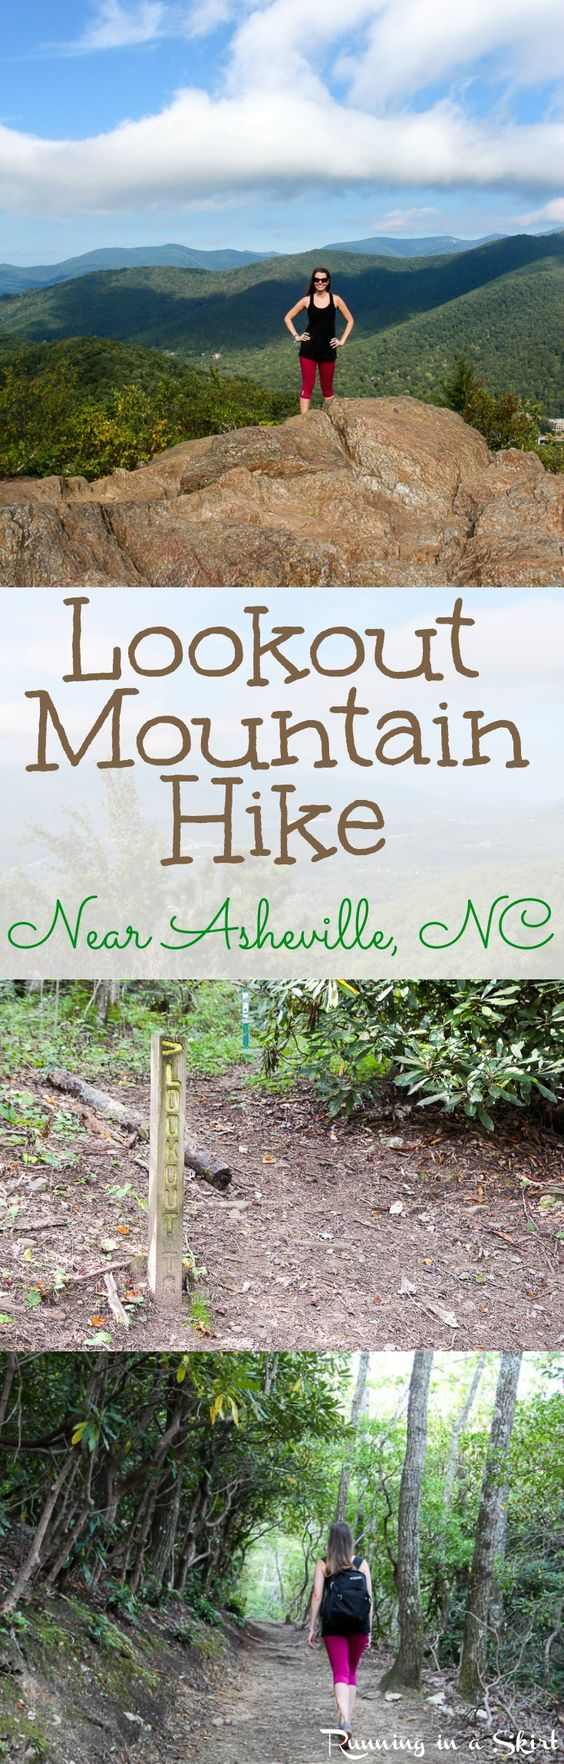 Lookout Mountain hike in Montreat near Asheville, North Carolina!  Stunning early fall views of the NC Mountains near the Blue Ridge Parkway in this beautiful adventure.  Fun tips to make this hike part of your next road trips! Includes directions and pictures of the trail!  See stunning views in a steep, but short climb. Bold Percent - AD/ Running in a Skirt